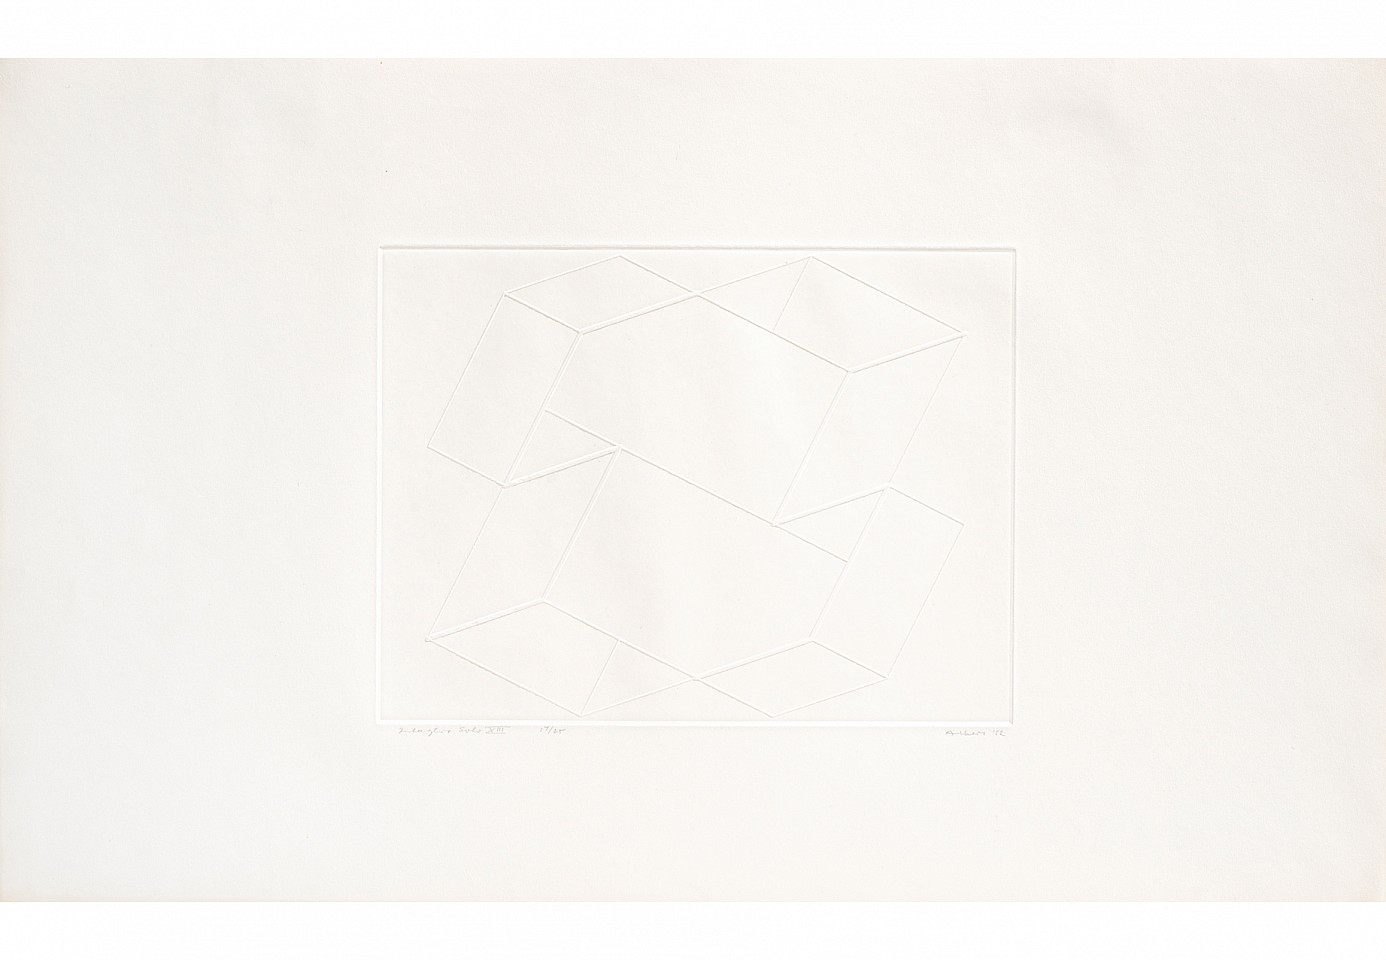 "<p><span class=""viewer-caption-artist"">Josef Albers</span></p> <p><span class=""viewer-caption-title""><i>Intaglio Solo XIII</i></span>, <span class=""viewer-caption-year"">1962</span></p> <p><span class=""viewer-caption-media"">Inkless intaglio from brass plate on Arches deckle edge paper</span></p> <p><span class=""viewer-caption-dimensions"">35.6 x 56.2 cm (14 x 22 1/8 in.)</span></p> <p><span class=""viewer-caption-inventory"">JOA0001</span></p> <p><span class=""viewer-caption-aux""></span></p>"